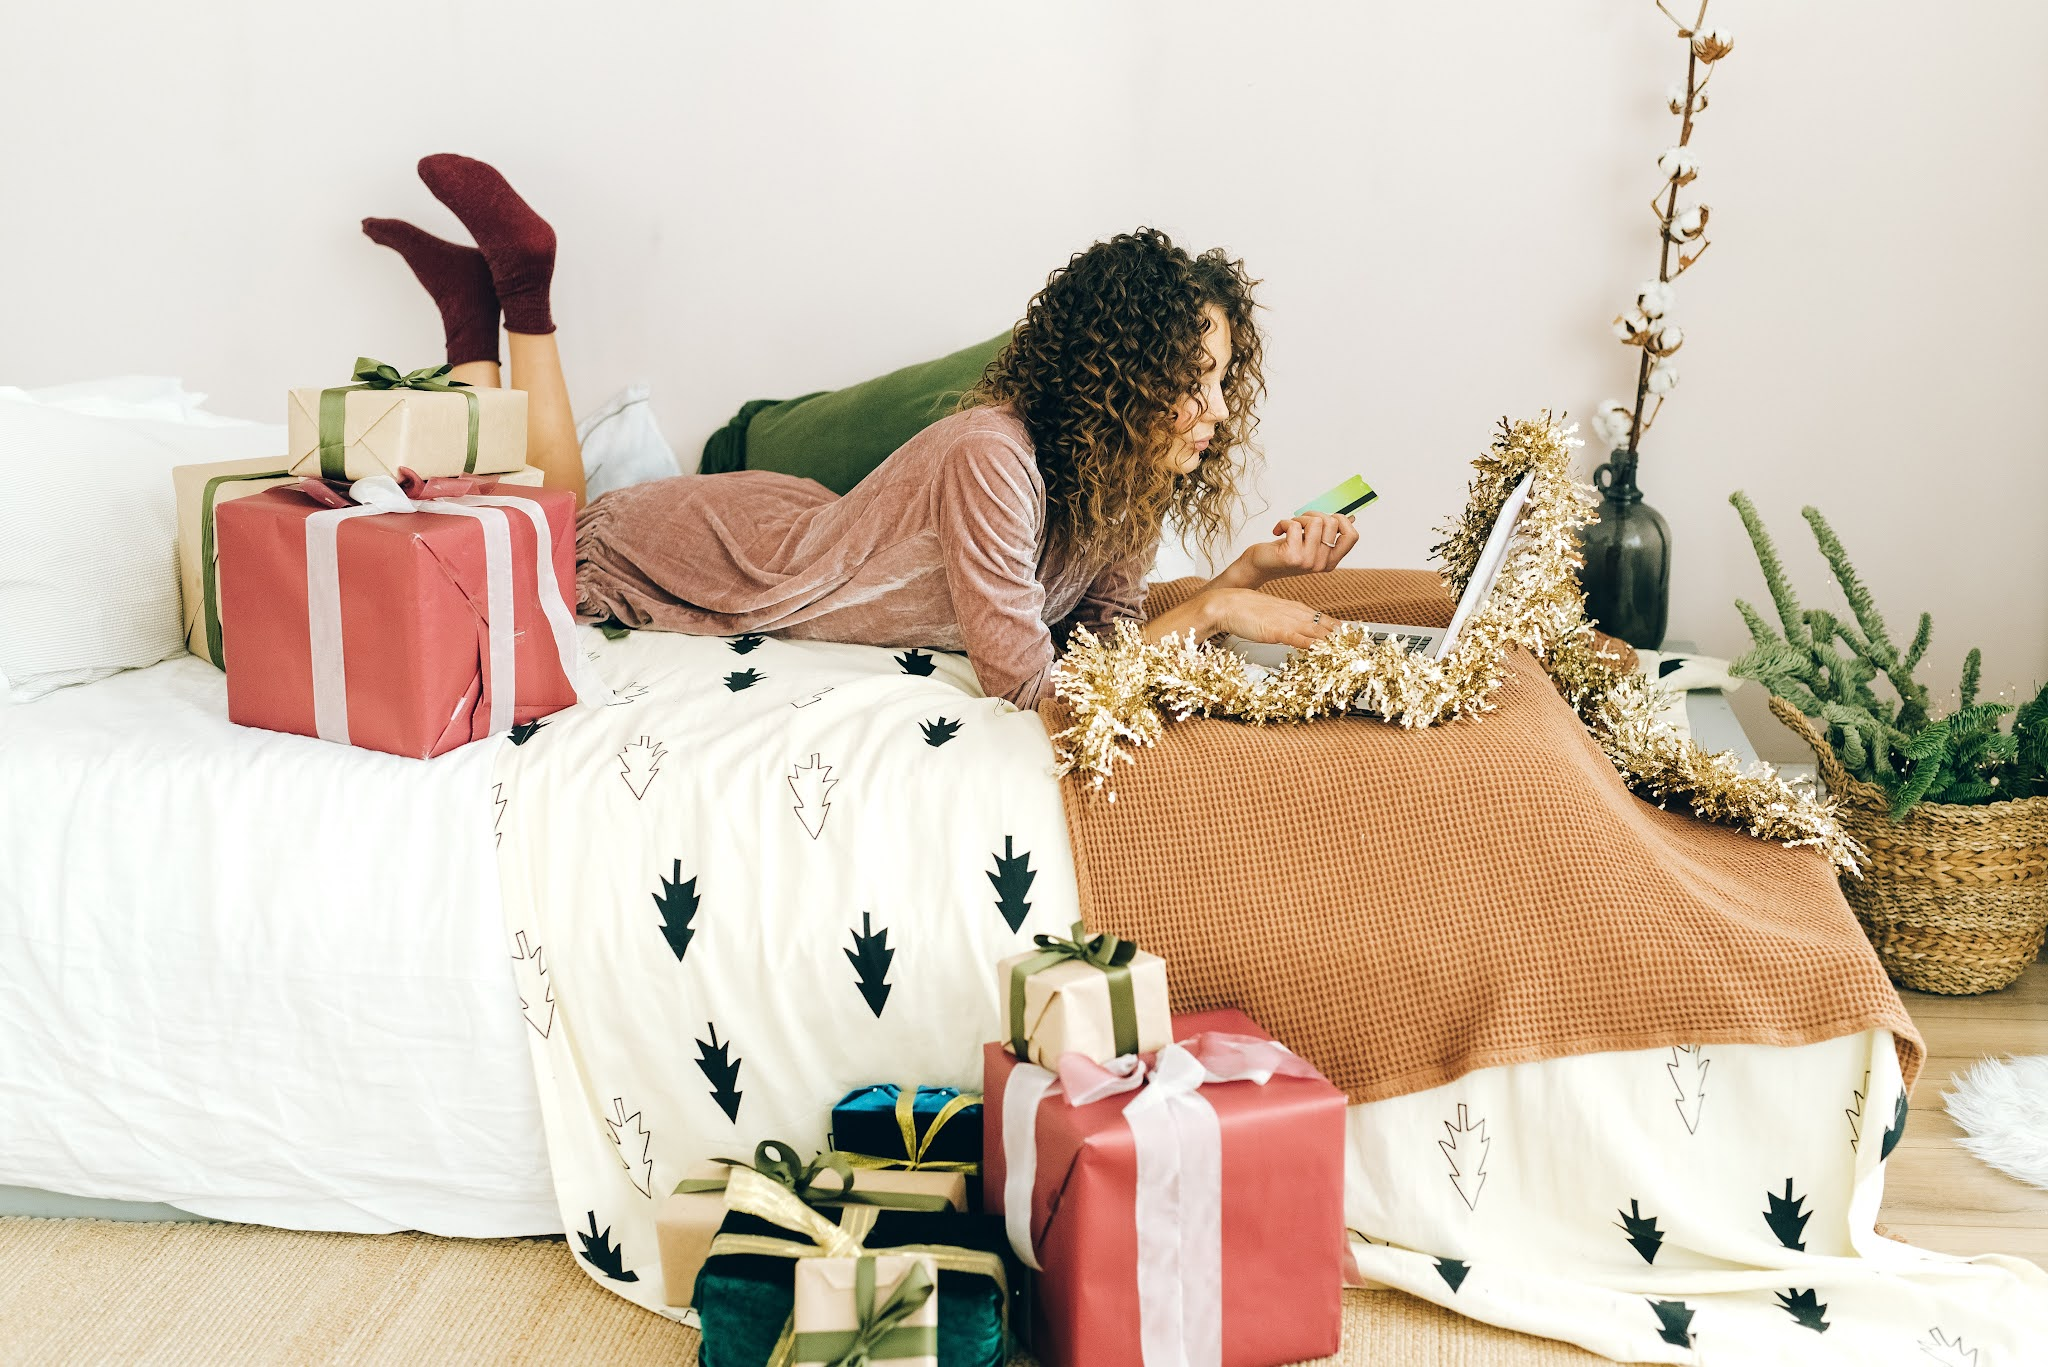 Woman doing online shopping on her bed surrounded by parcels. Image by  Photo by Olya Kobruseva from Pexels